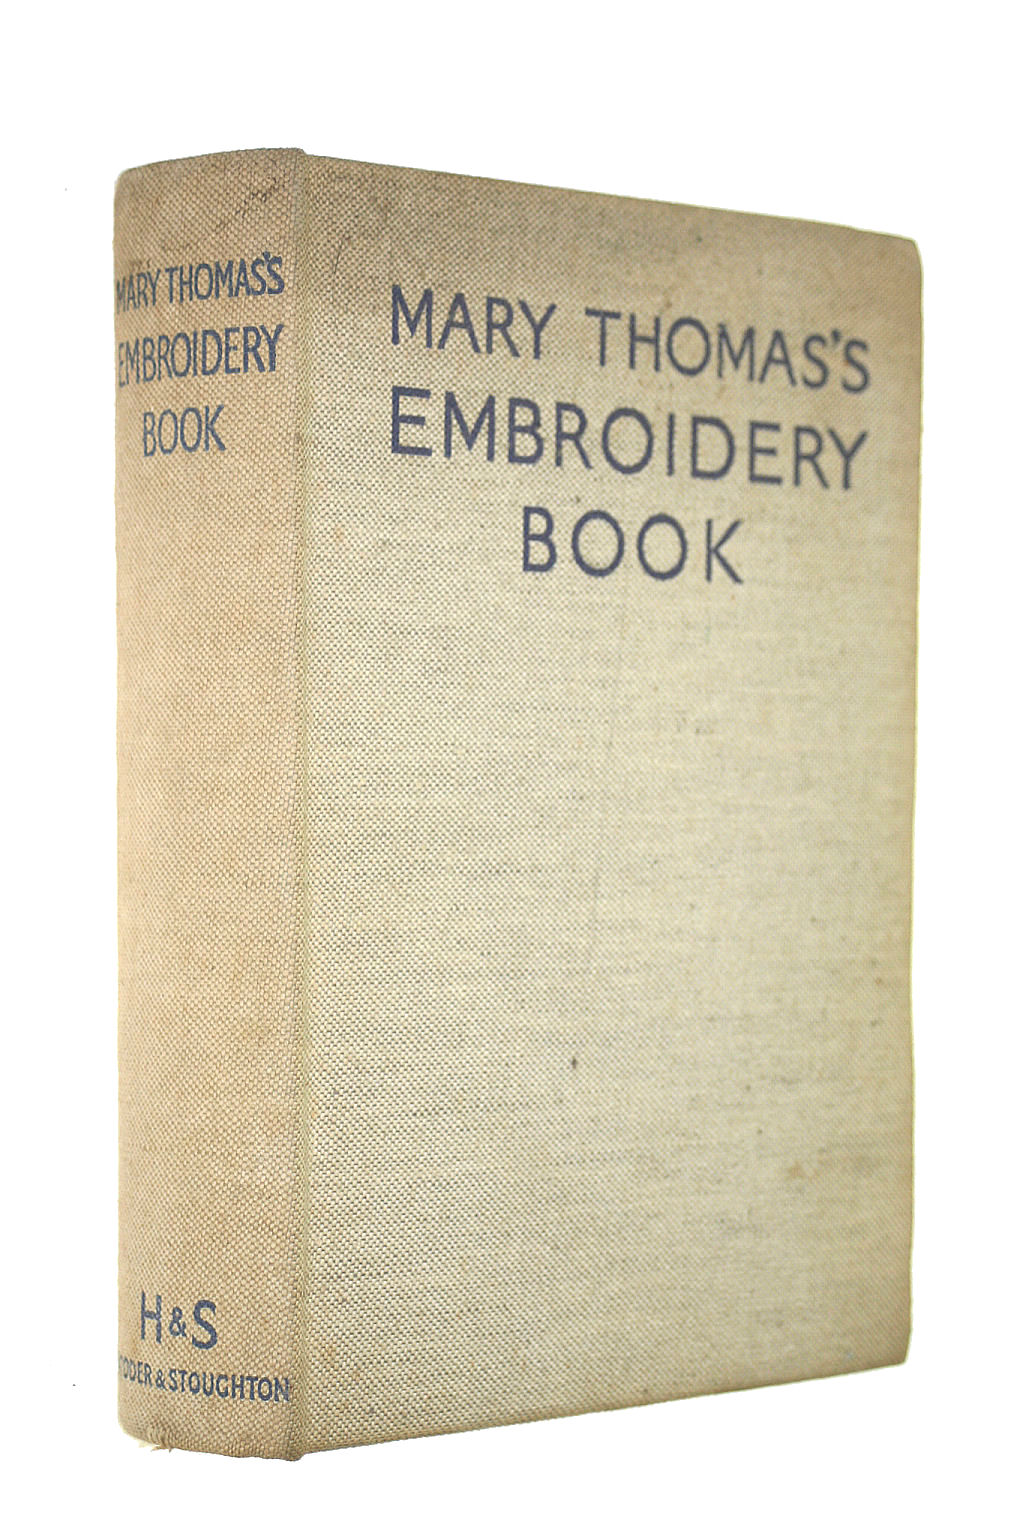 Image for Mary Thomas's DICTIONARY OF EMBROIDERY STITCHES